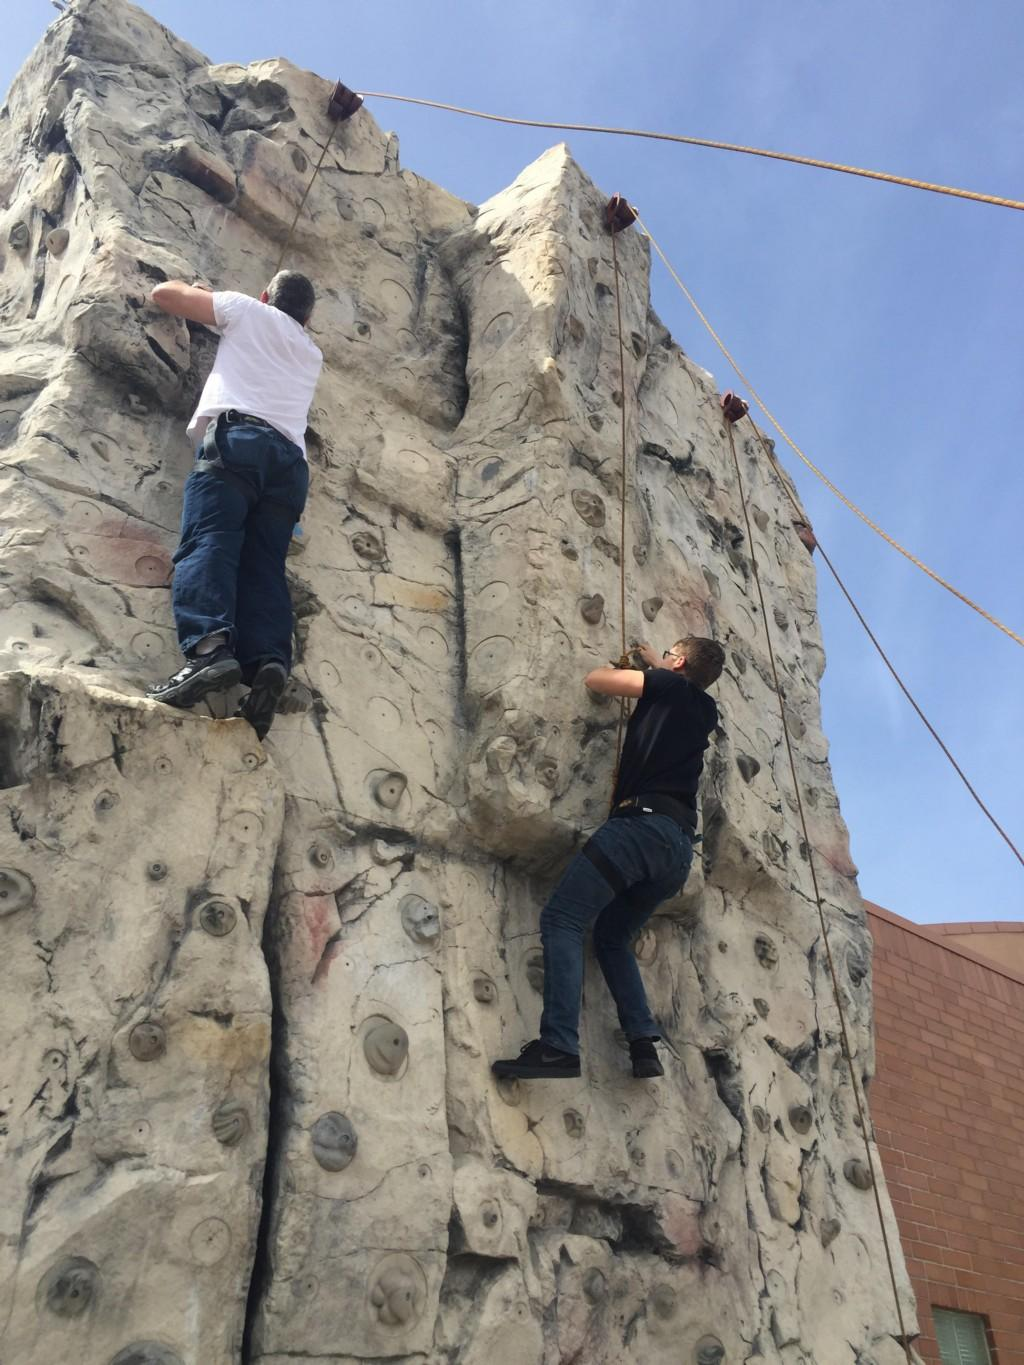 La Mesa Staff Climbing the Wall